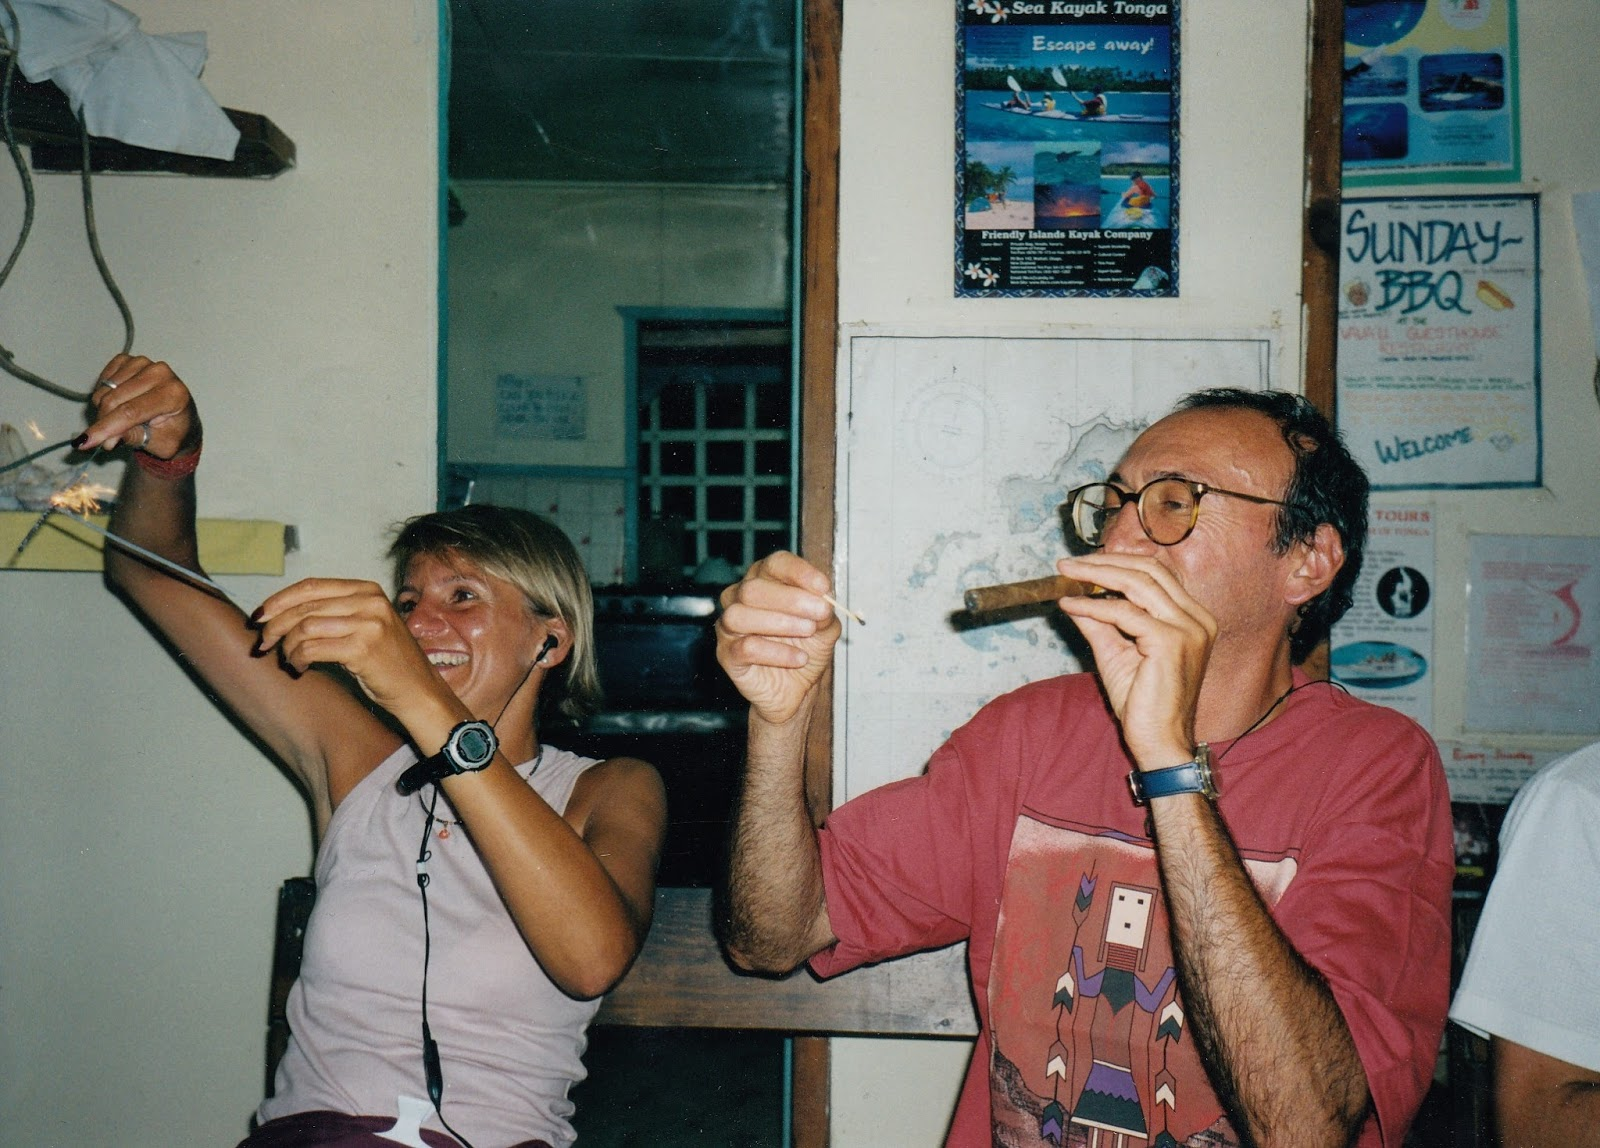 Tonga, where we brought in the New Millennium with sparklers and cigars